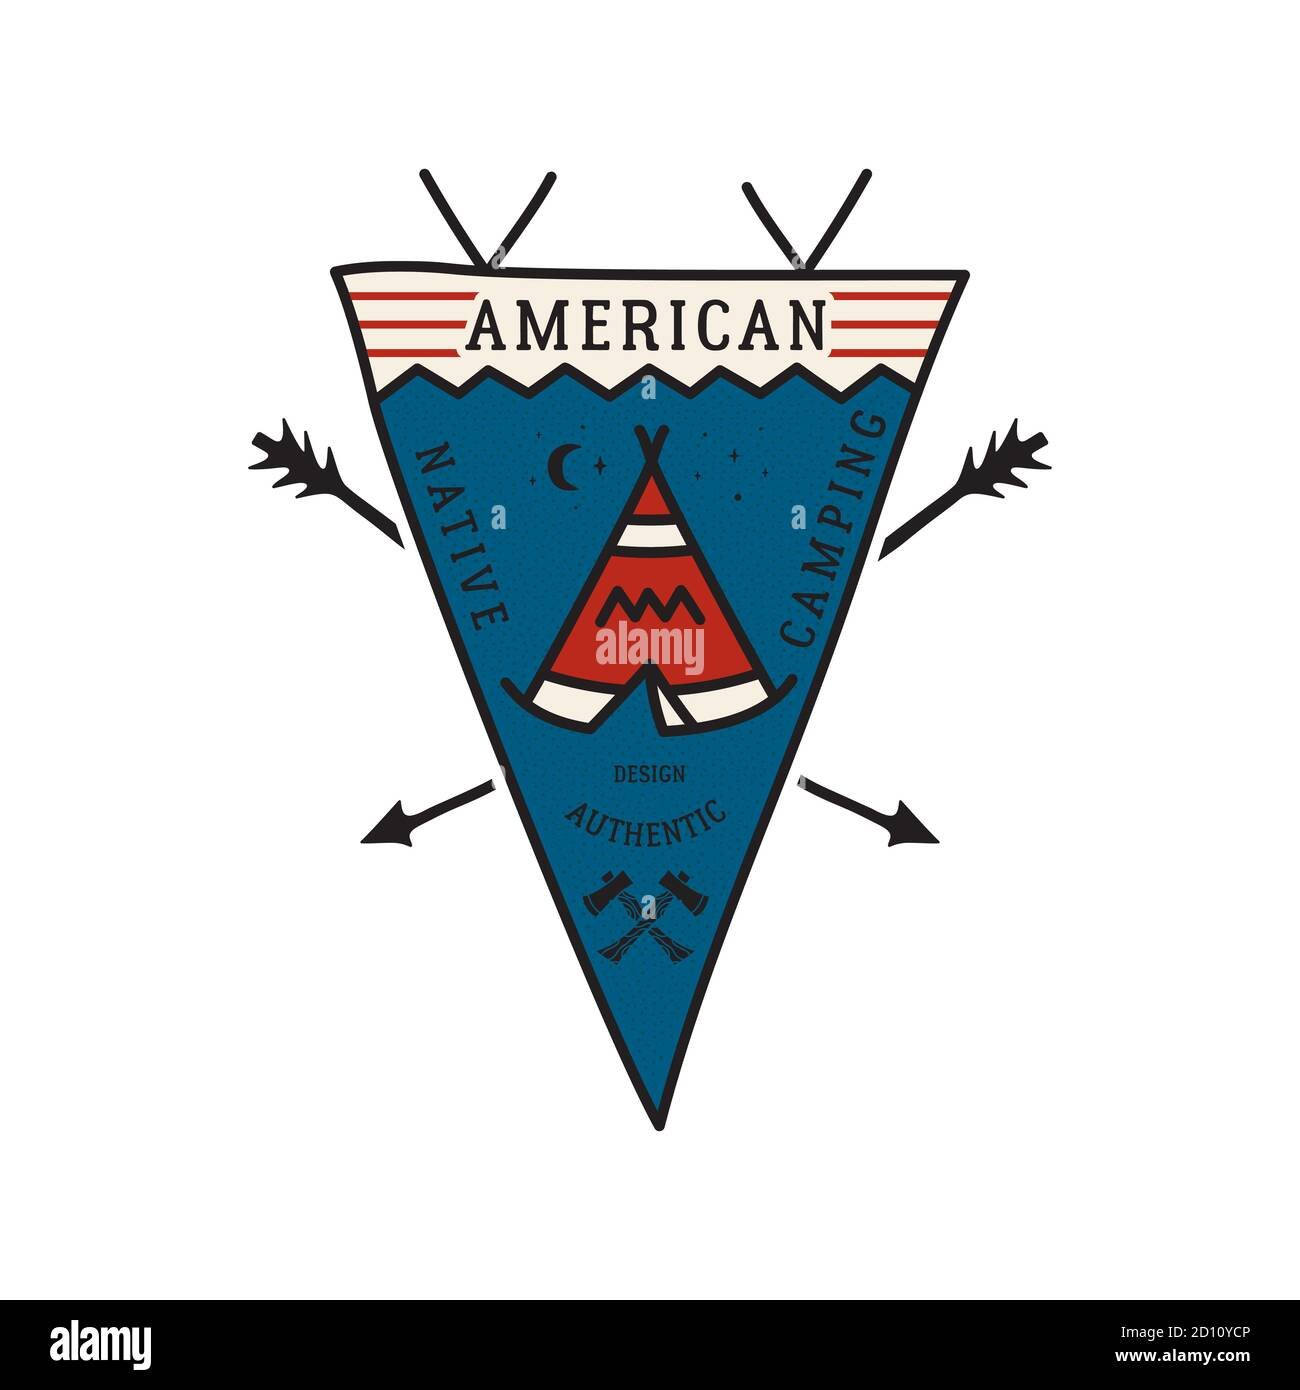 Vintage camping adventure pennant emblem illustration design. Outdoor logo badge with tent and text - American Native camping. Unusual linear hipster Stock Vector